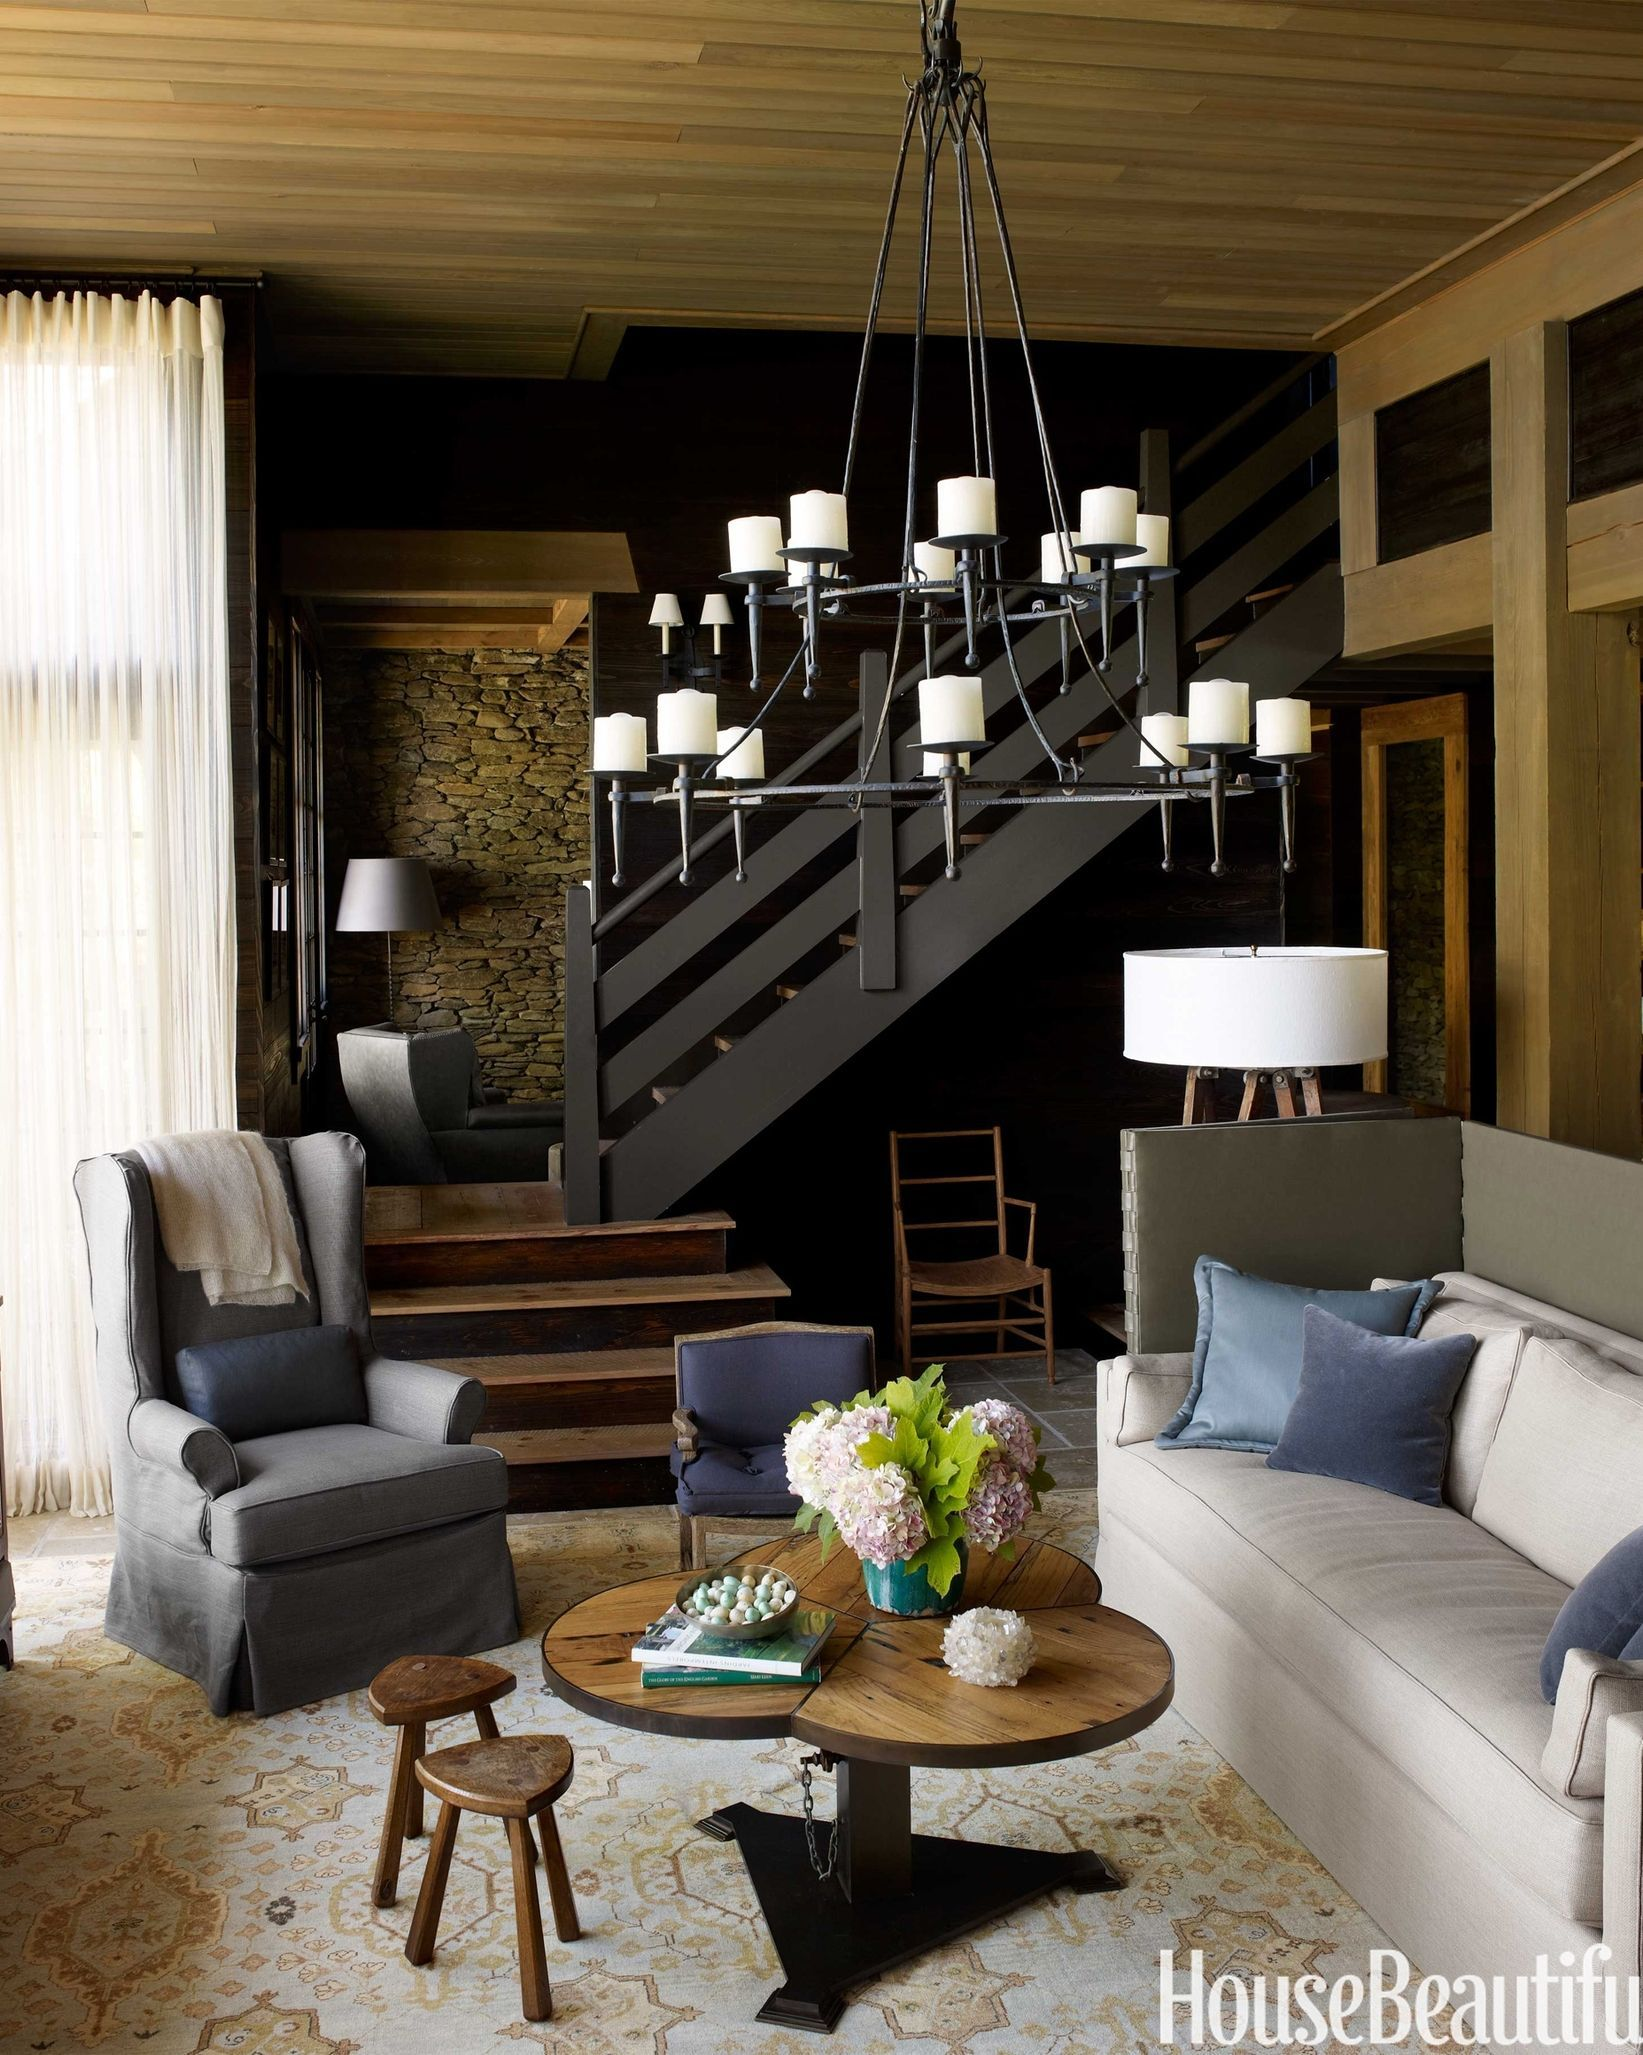 15 Black Home Decor And Room Ideas Decorating With Black